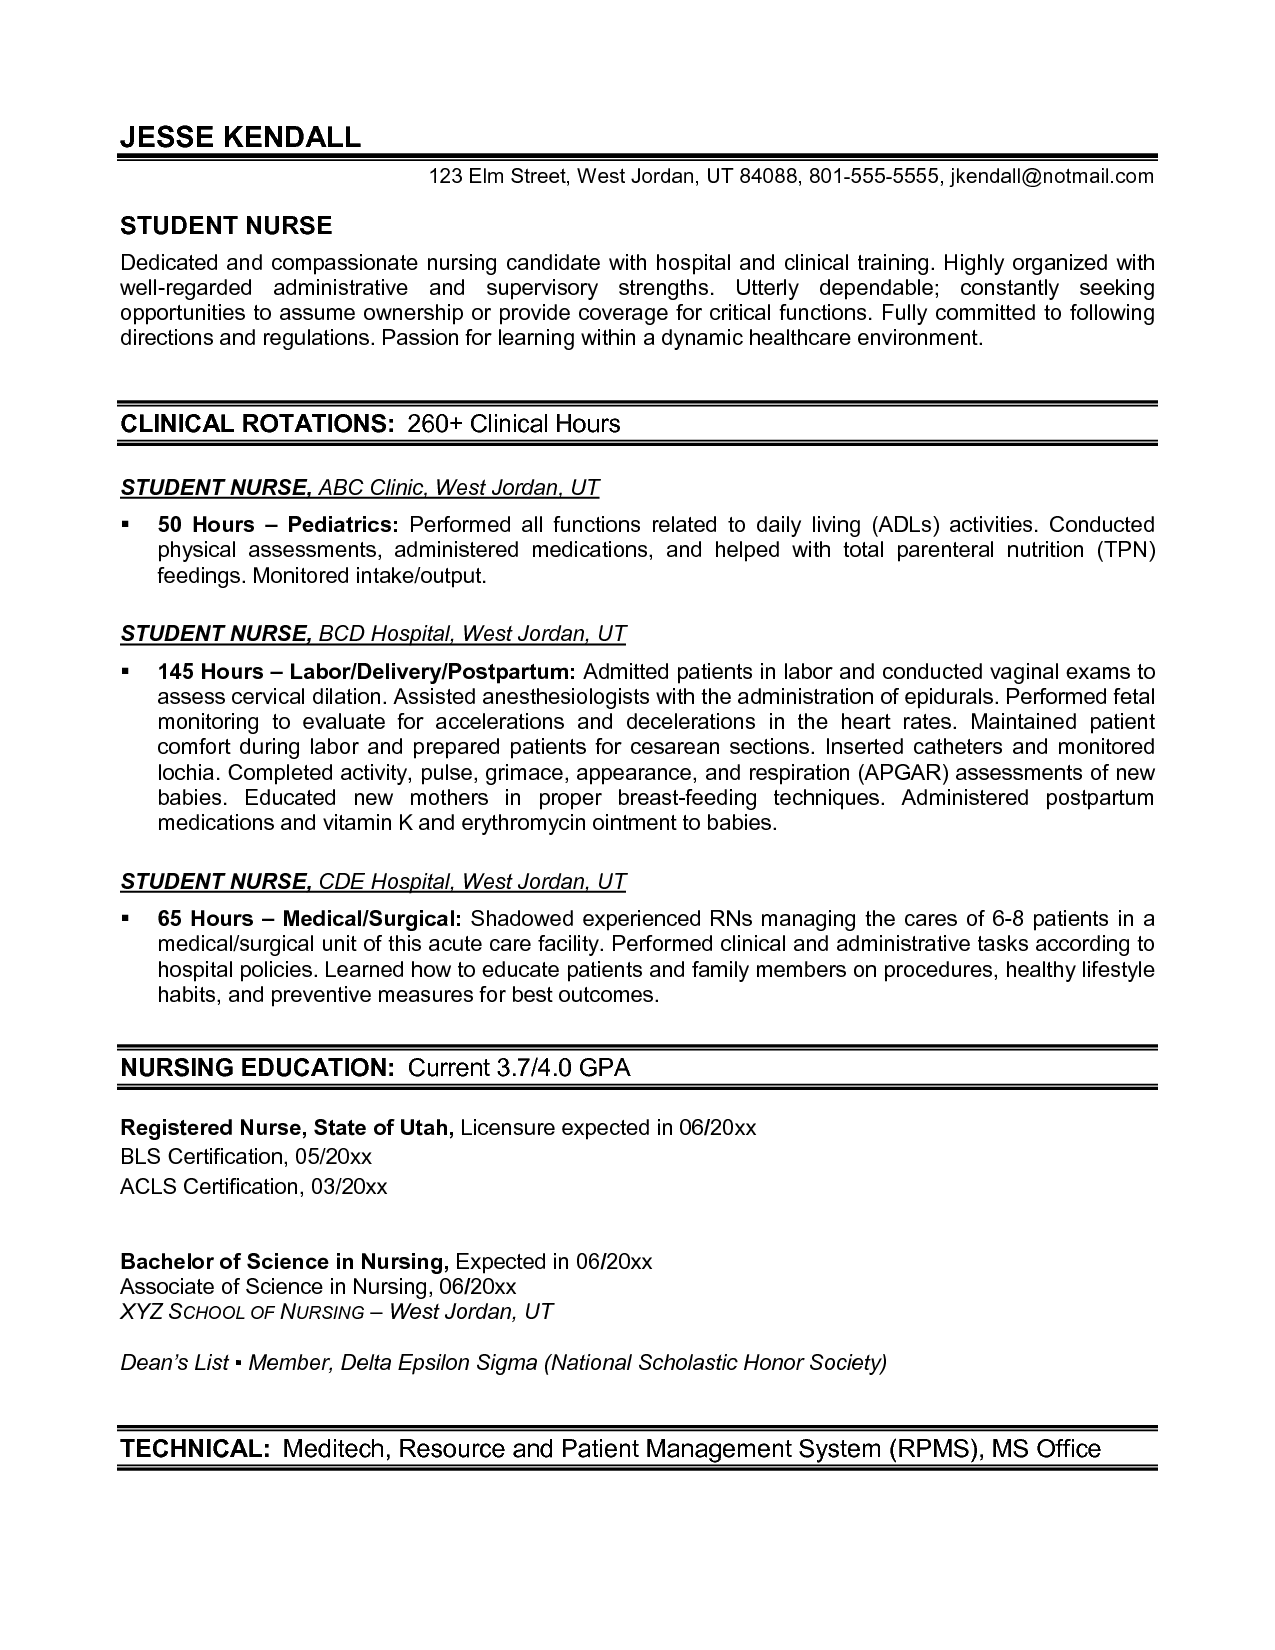 nursing resume template best templateresume templates cover letter examples